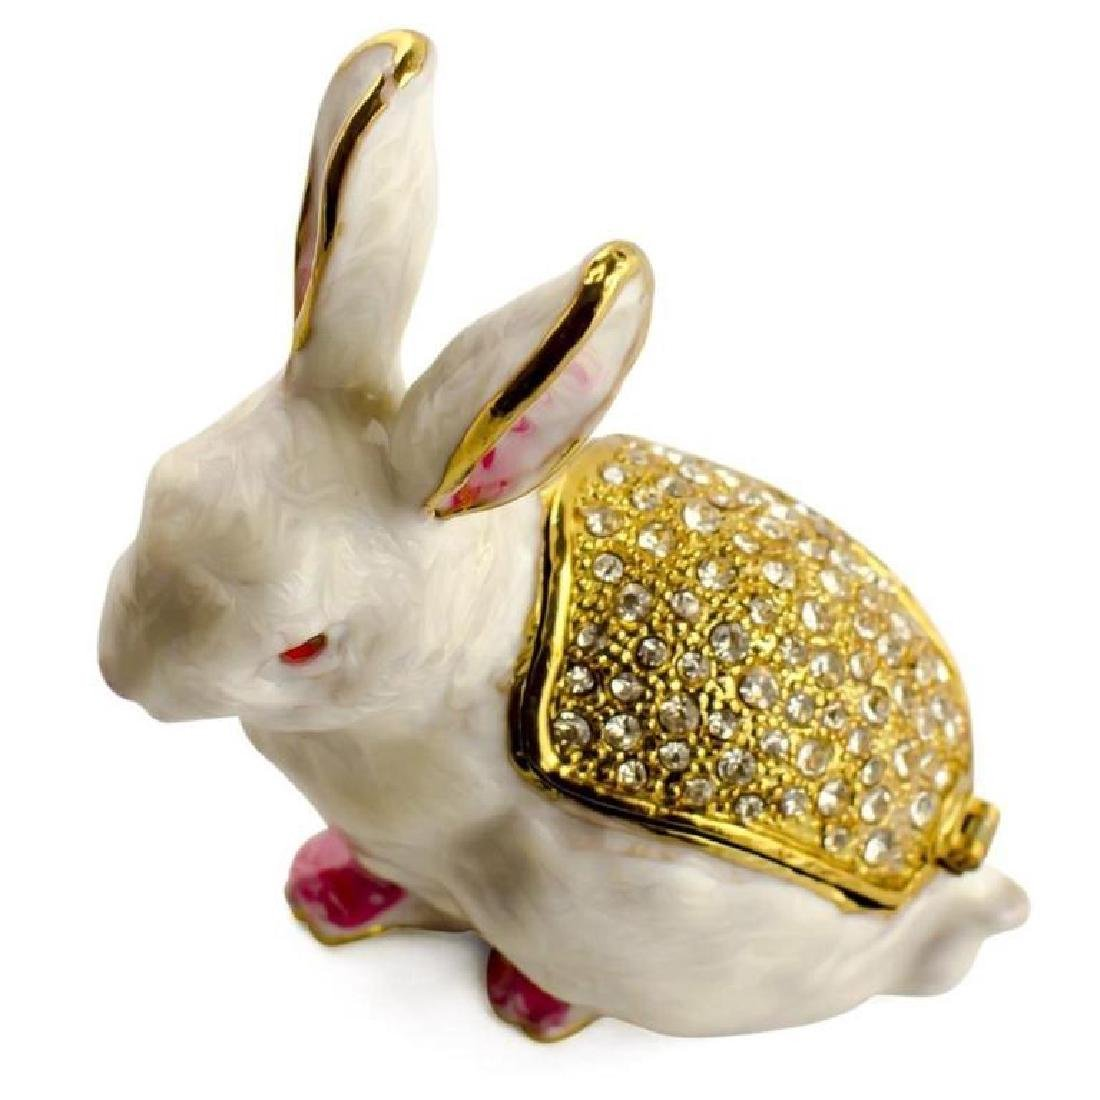 White Bunny Rabbit Jewel Trinket Box - 2